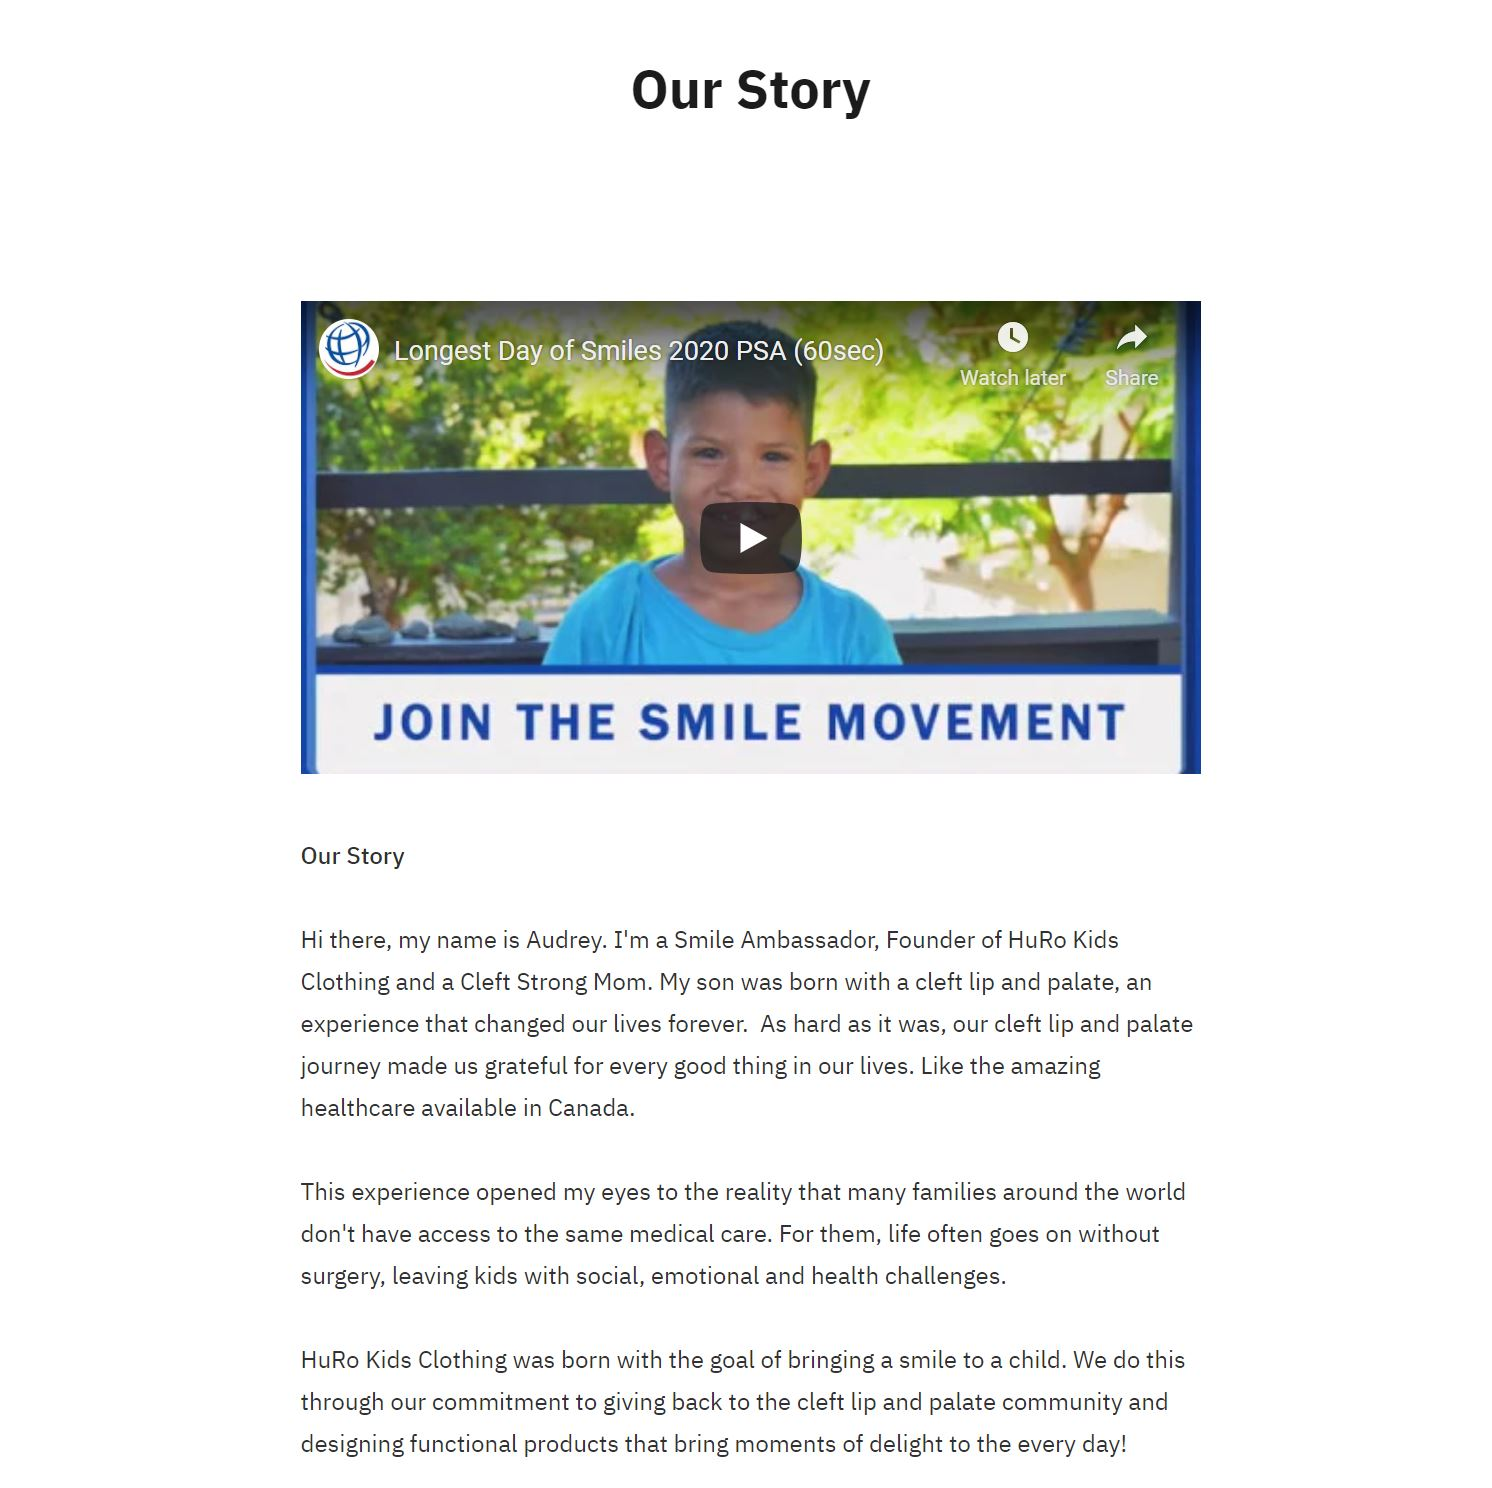 Our Story Example